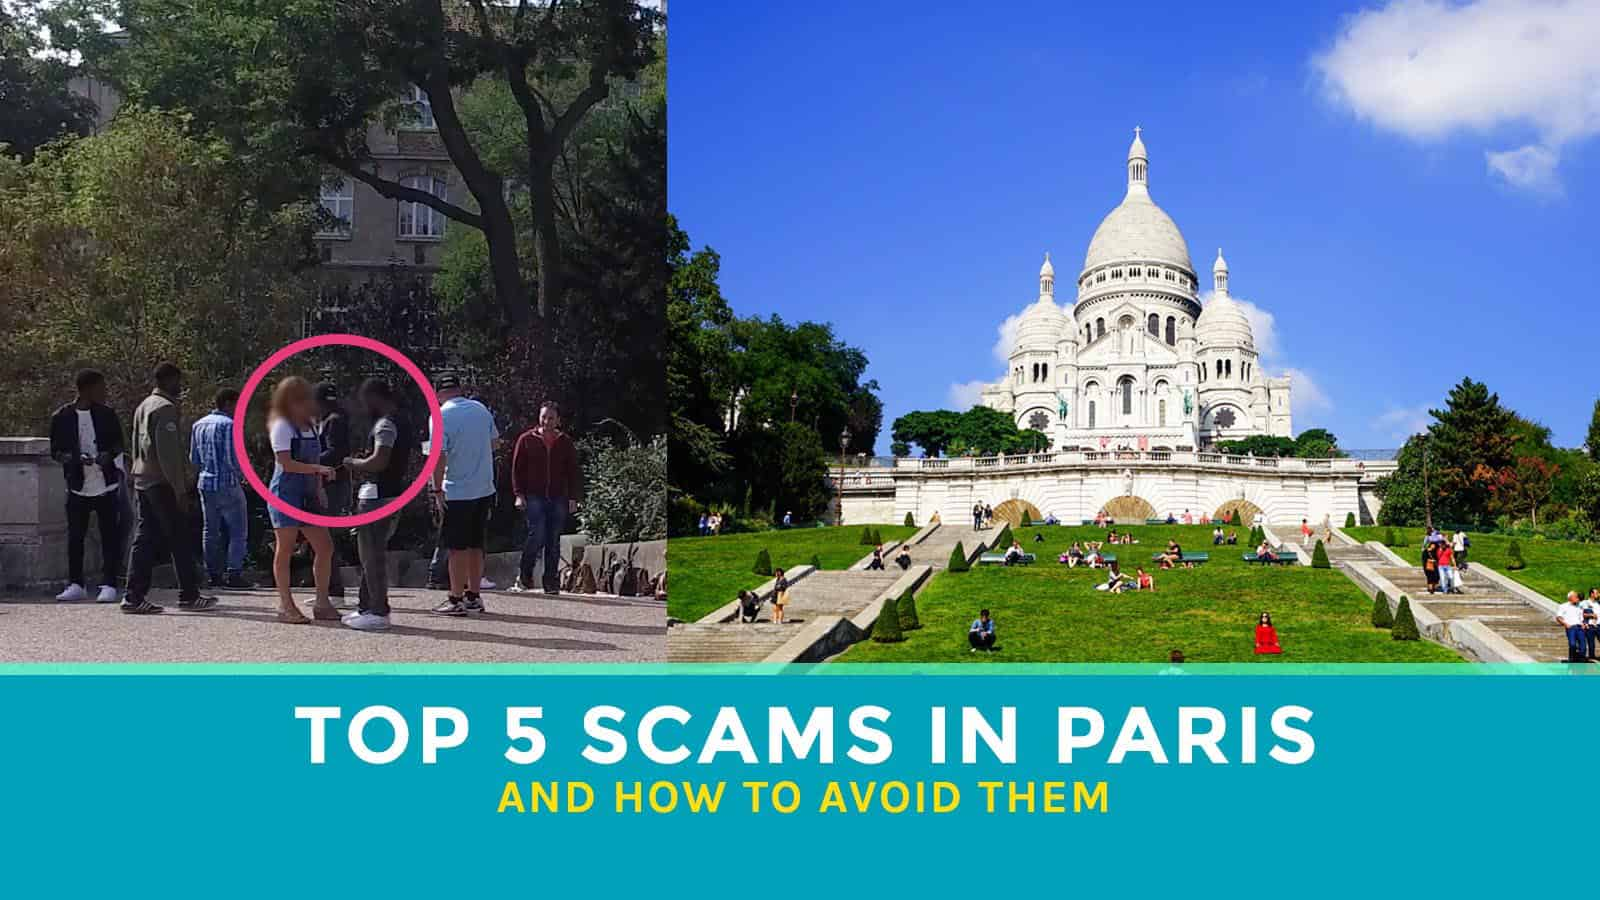 Top 5 PARIS SCAMS to Watch Out For & How to Avoid Them